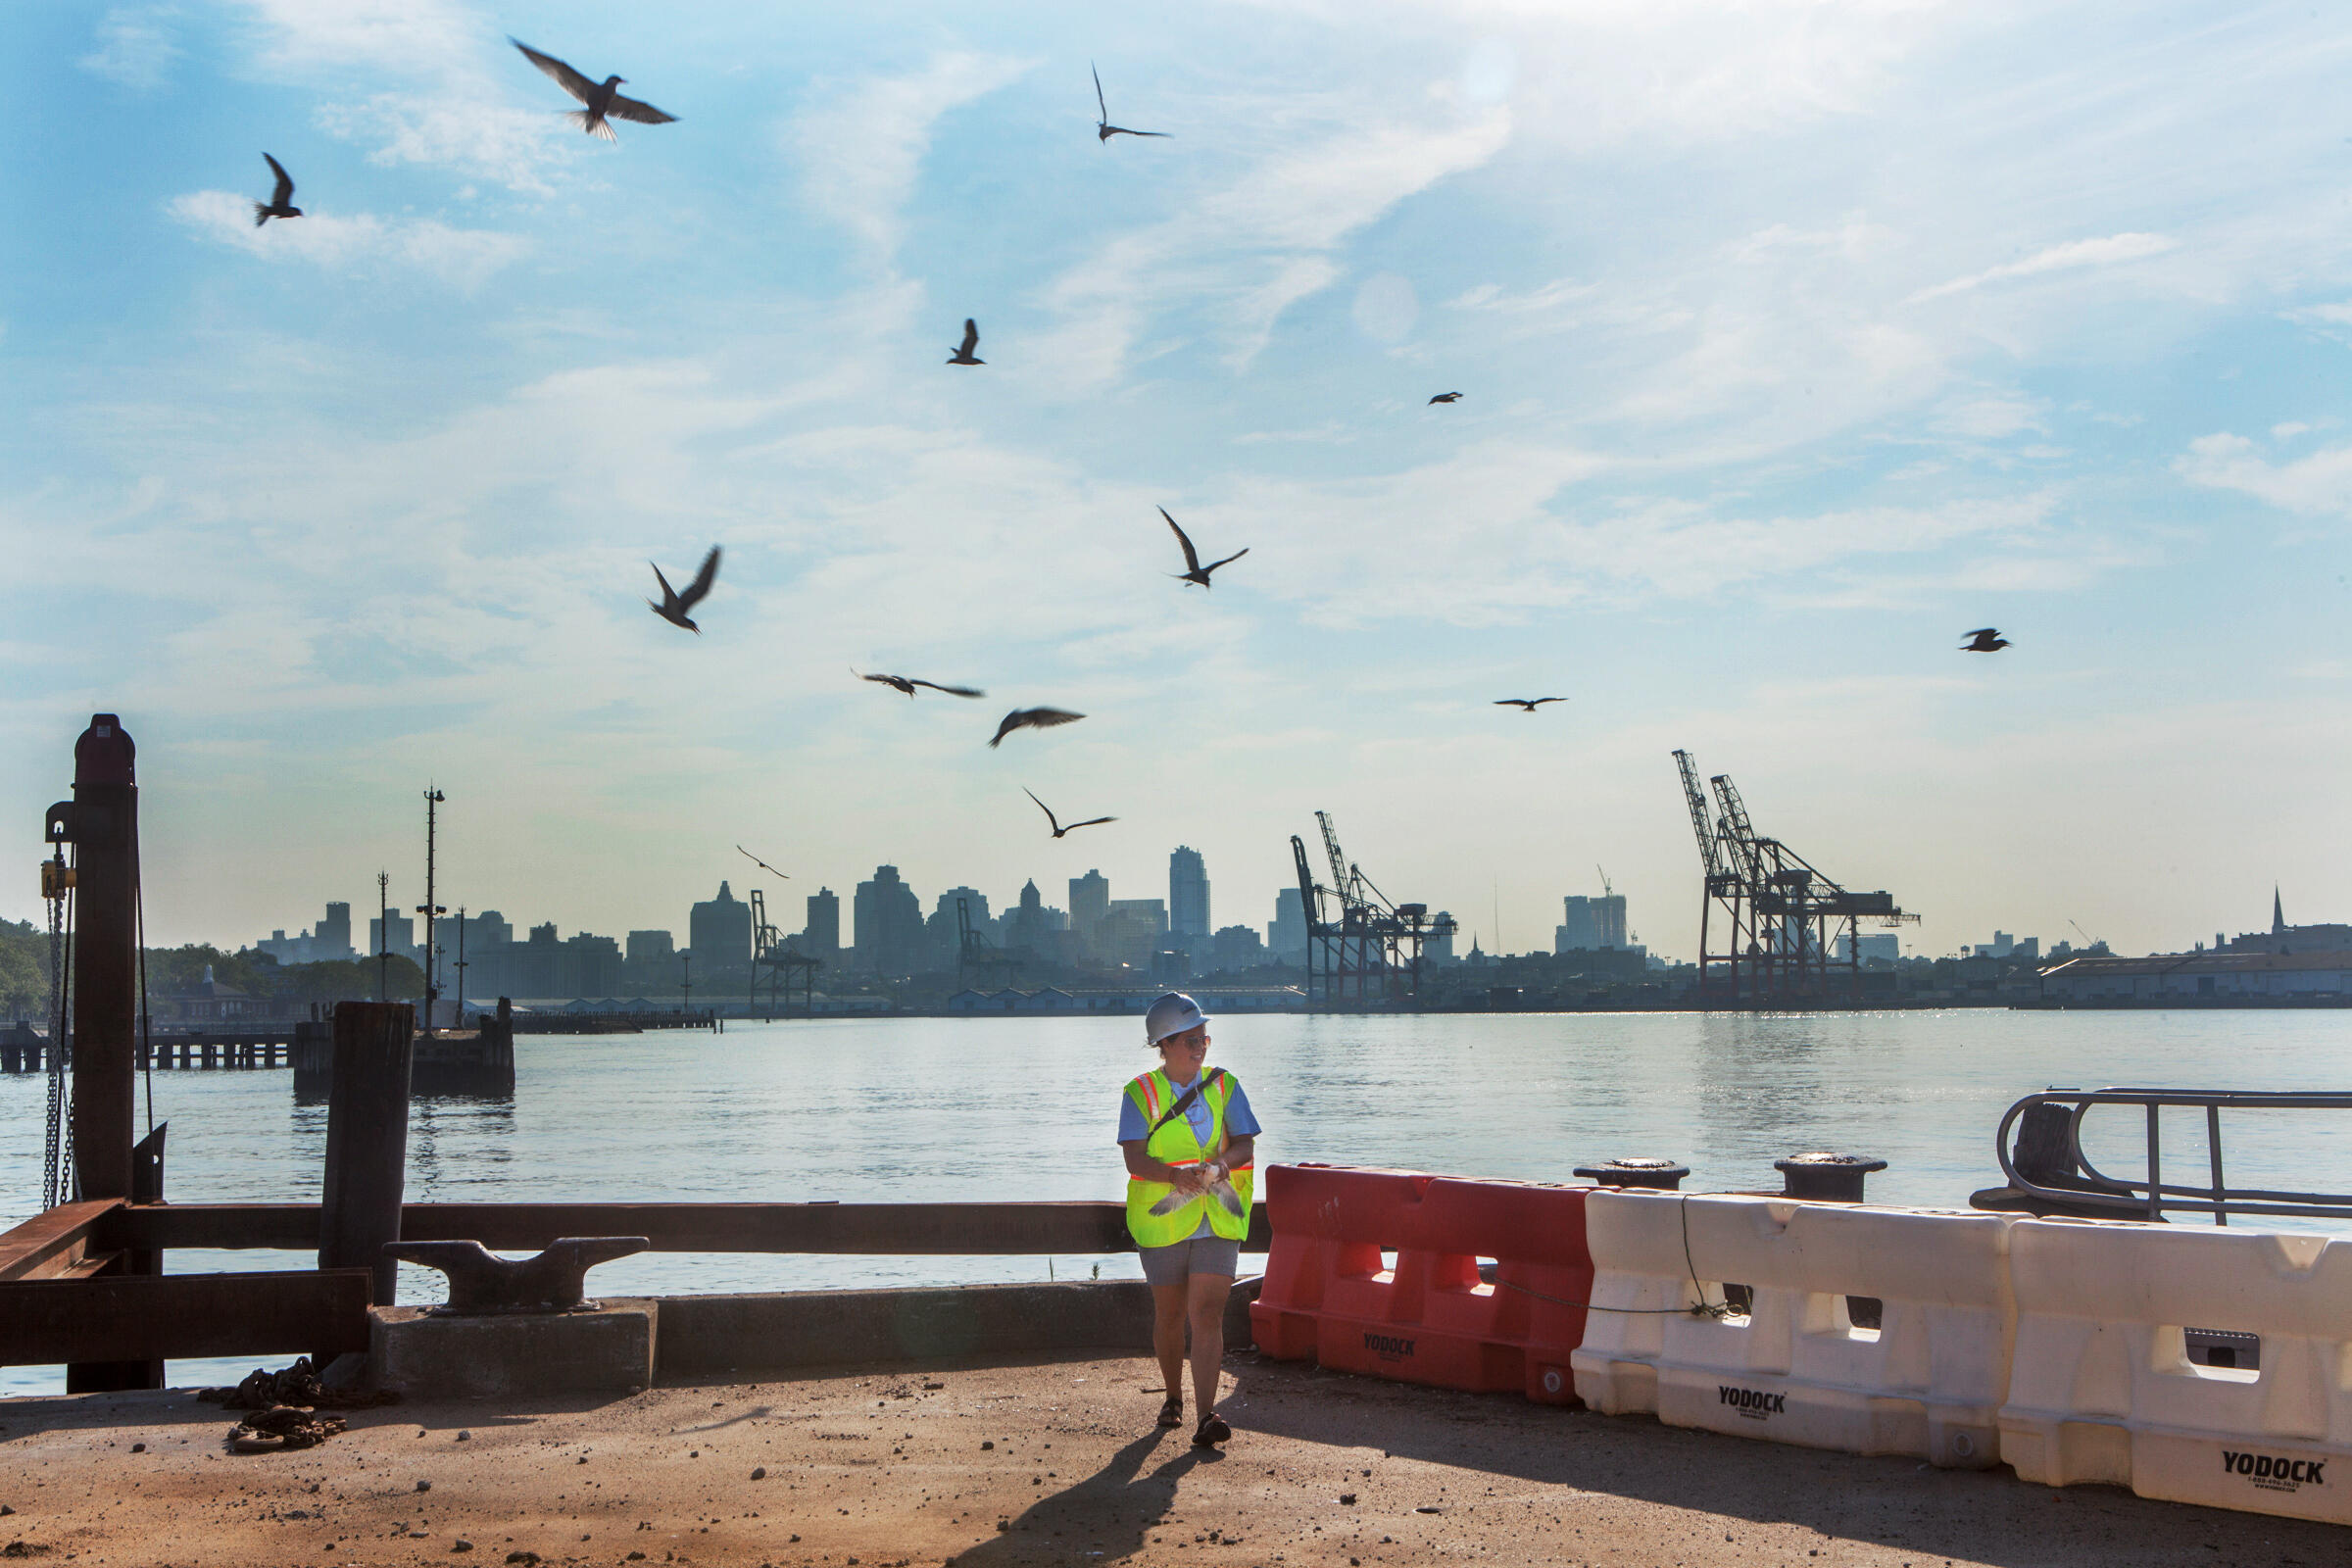 Elizabeth Craig, an avian researcher at Cornell University, is surrounded by Common Terns on Governors Island, New York, as she bands the chick in her hand. Camilla Cerea/Audubon